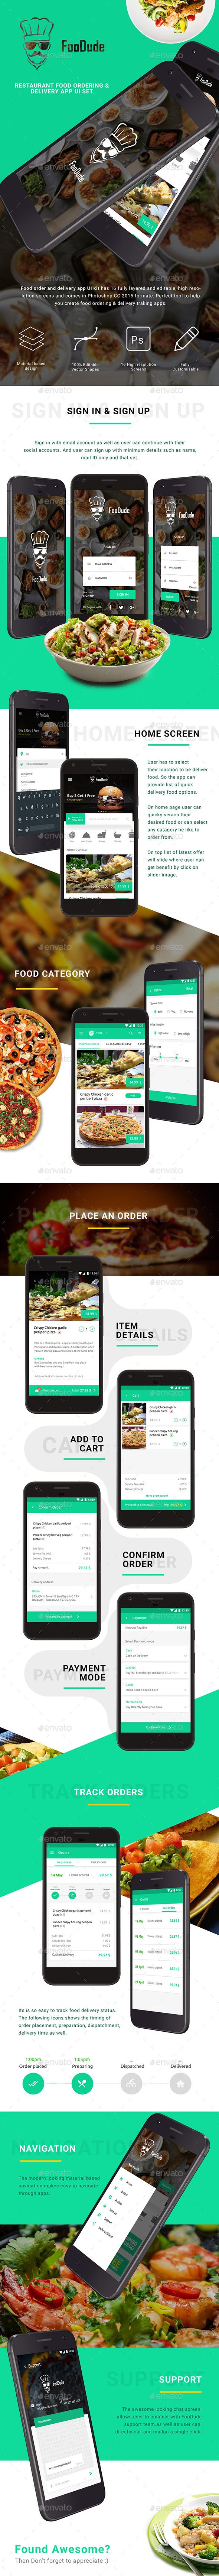 Free Box Delivery Interface Template (User Interfaces)